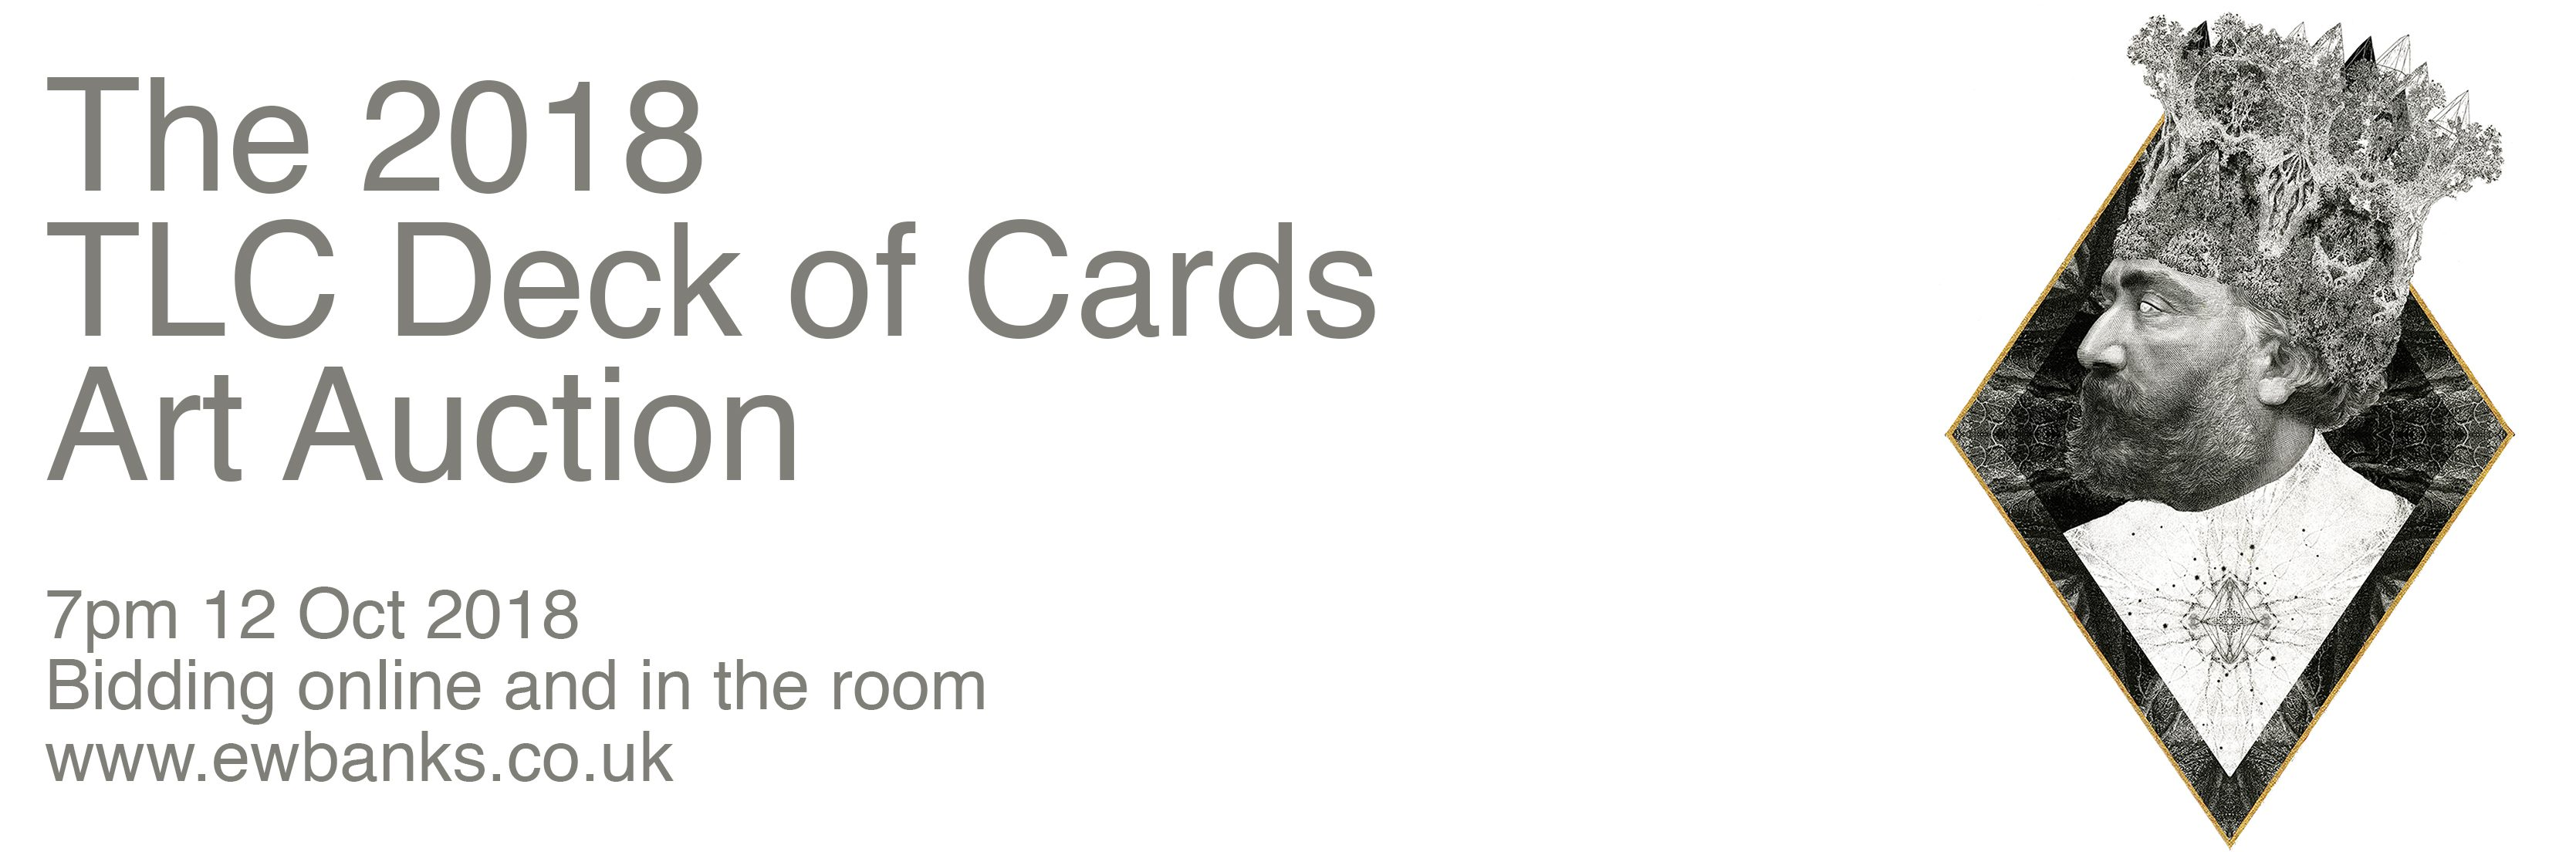 The TLC Deck of Cards Art Auction and Exhibition